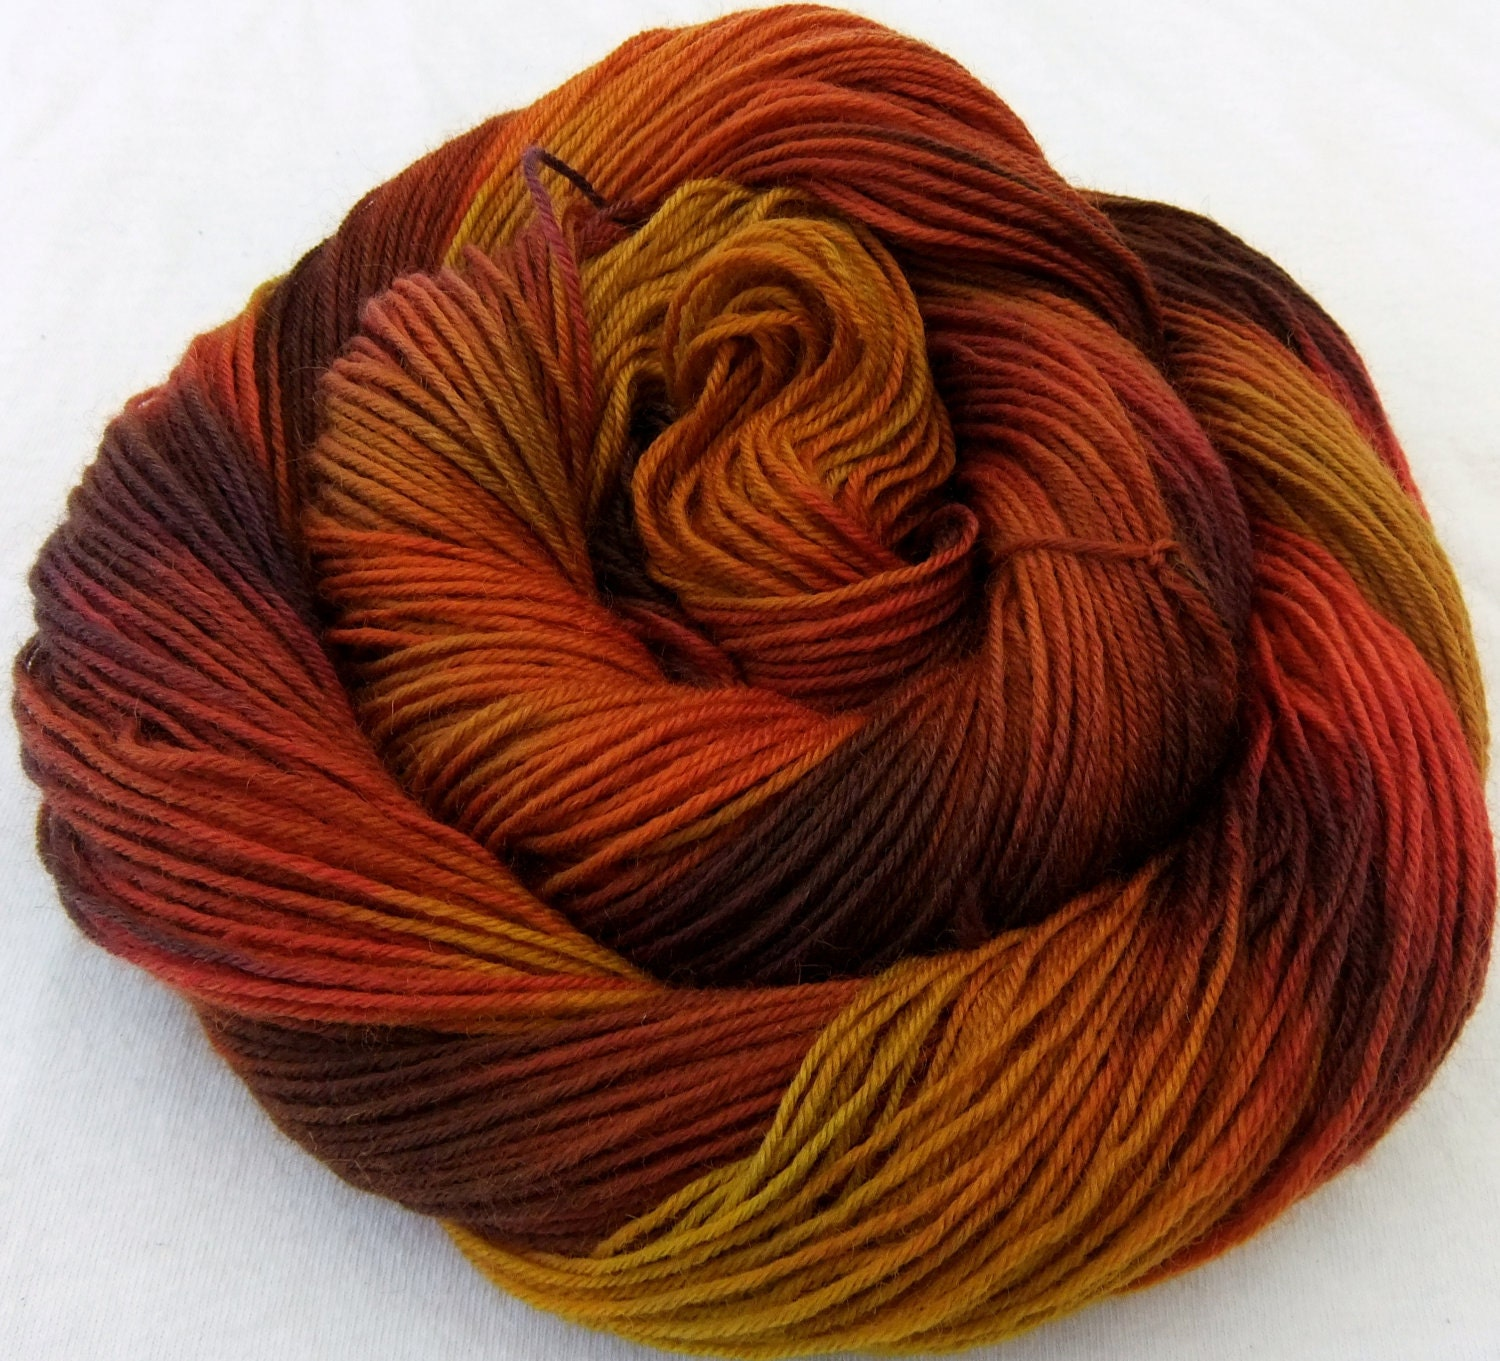 Autumn Blaze - Hand Dyed Fingering Merino/Nylon Yarn - 100g/400yards